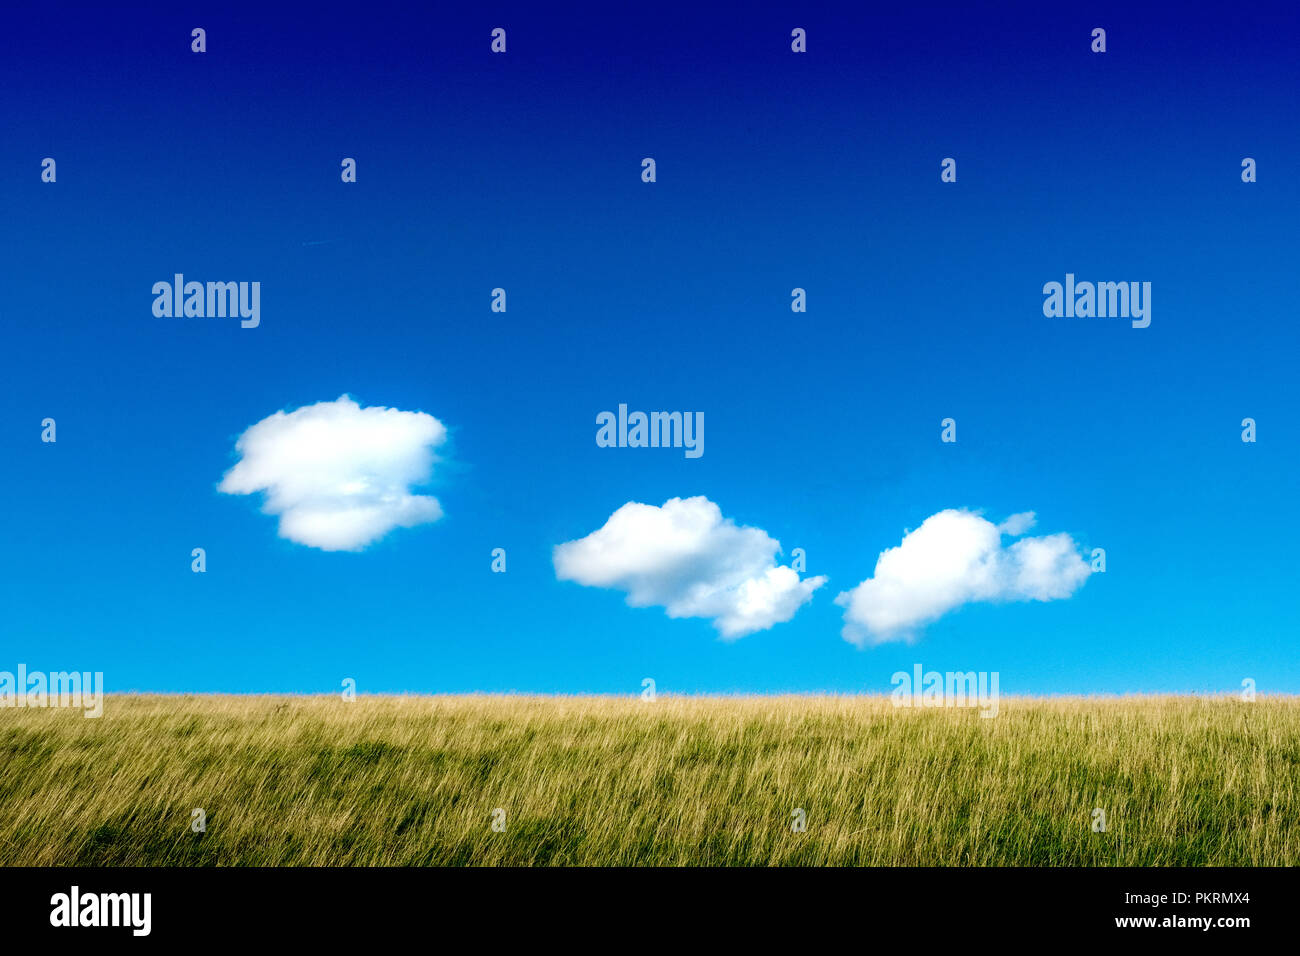 Blue sky and white ,fluffy clouds above grassy field, Peak District National Park - Stock Image